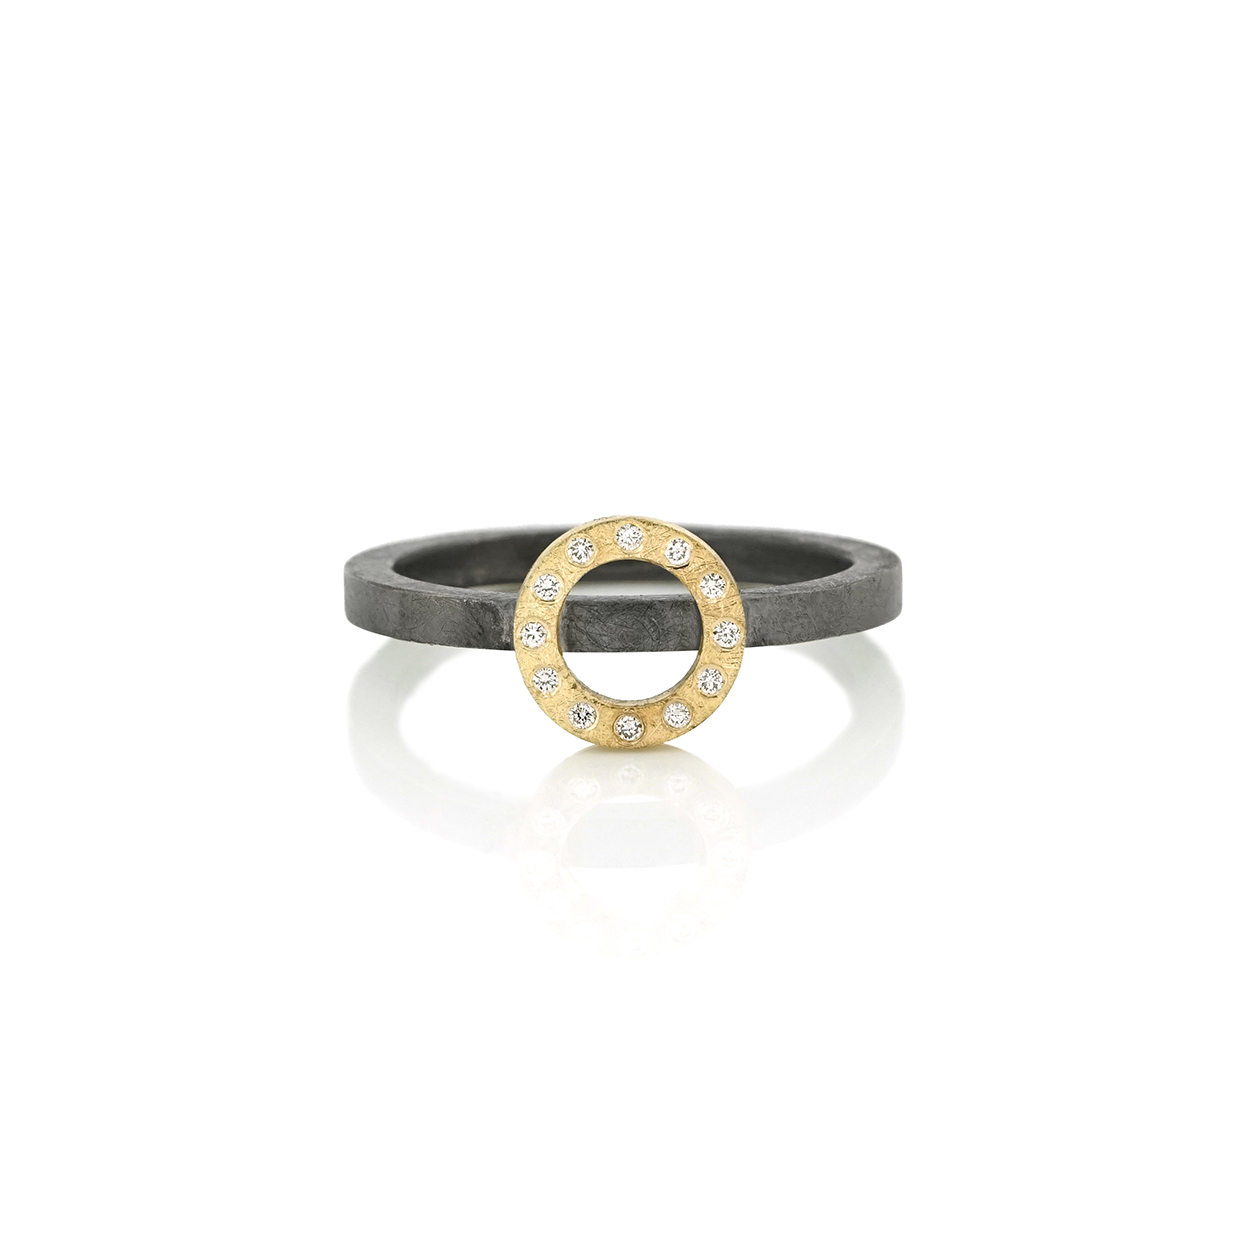 Diamond ring with open circle